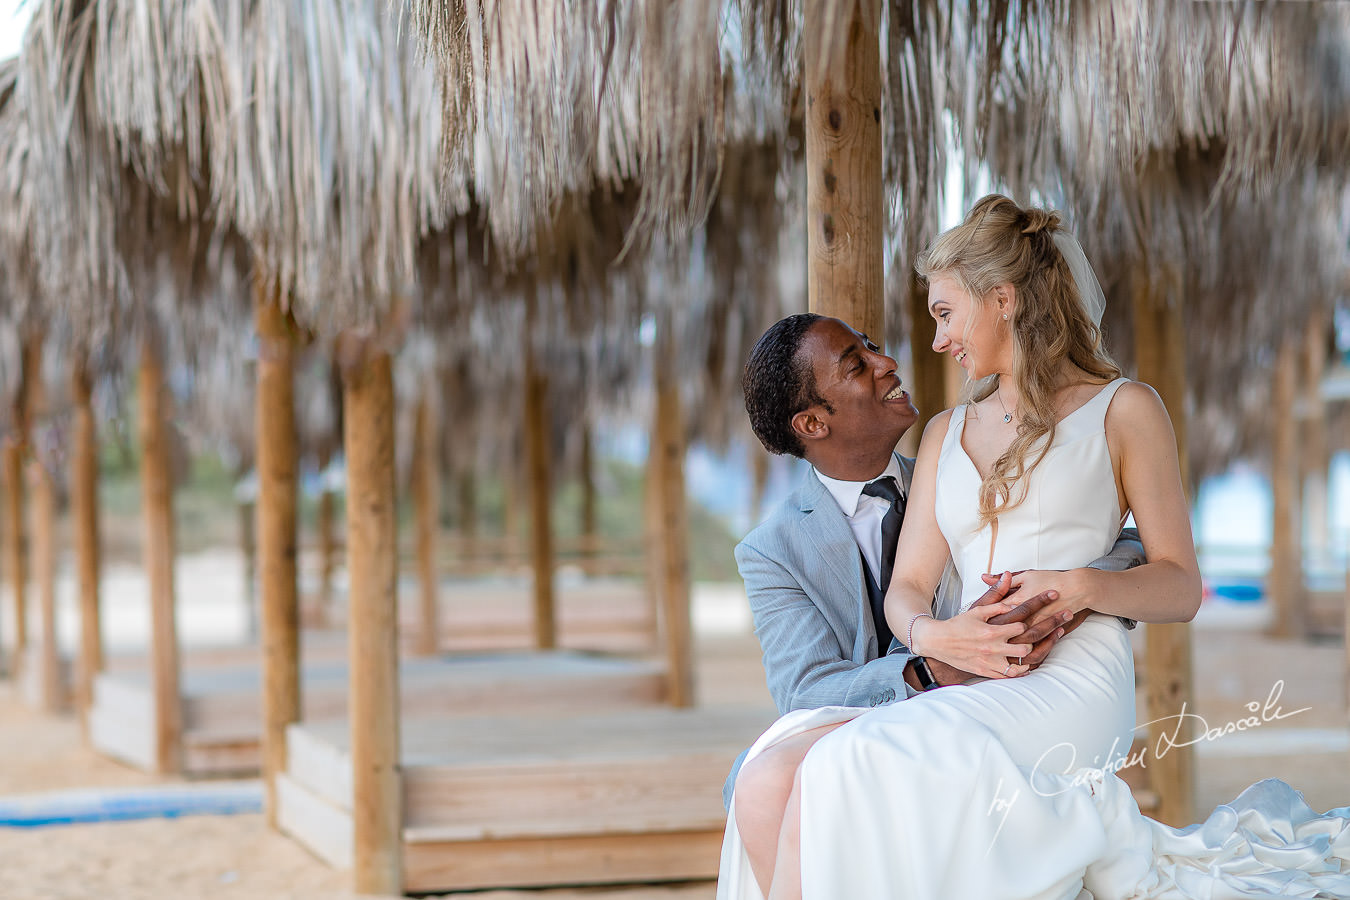 Wedding moments captured at an Exquisite Wedding at Asterias Beach Hotel. Photography by Cyprus Photographer Cristian Dascalu.